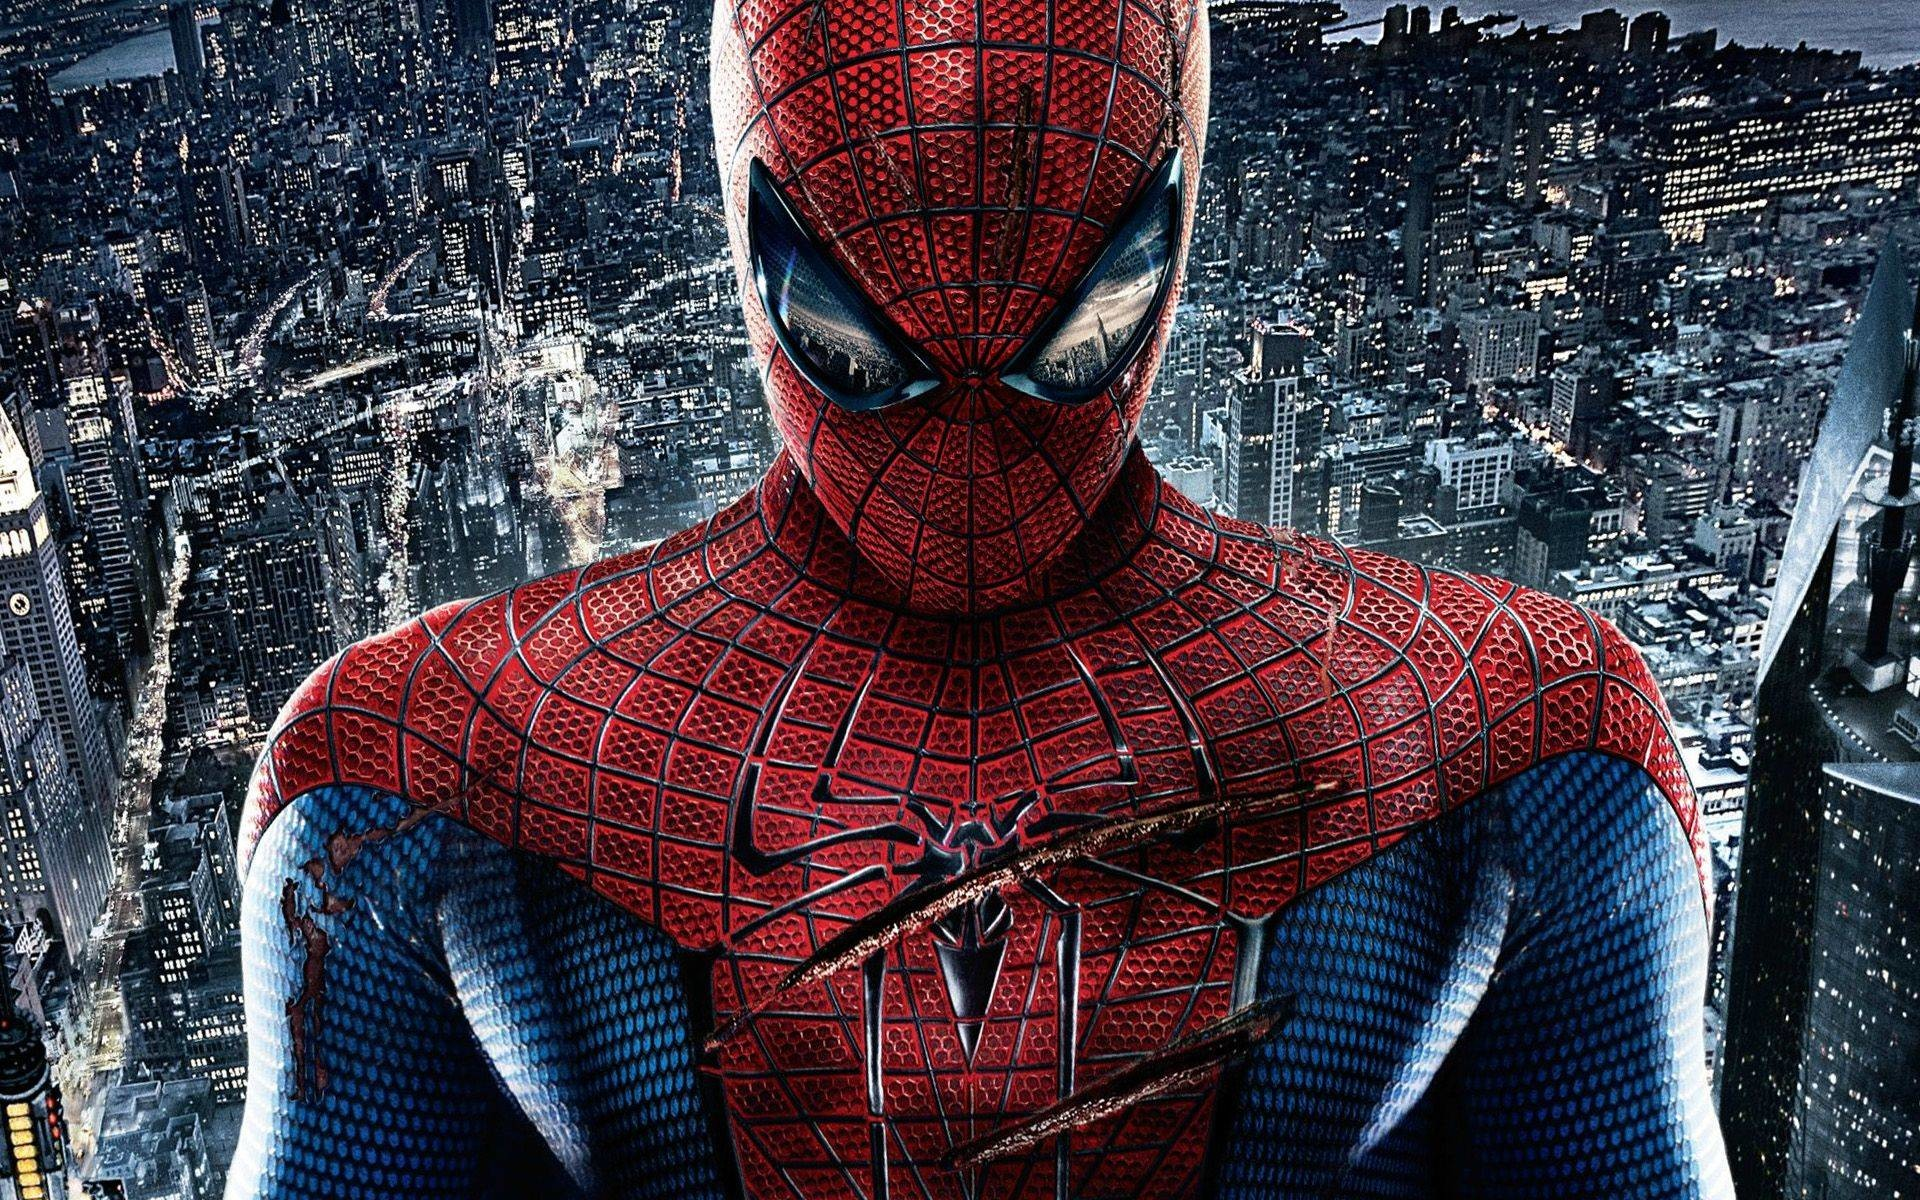 1920x1200 The Amazing Spider-Man HD Wallpaper | Background Image |  |  ID:247849 - Wallpaper Abyss